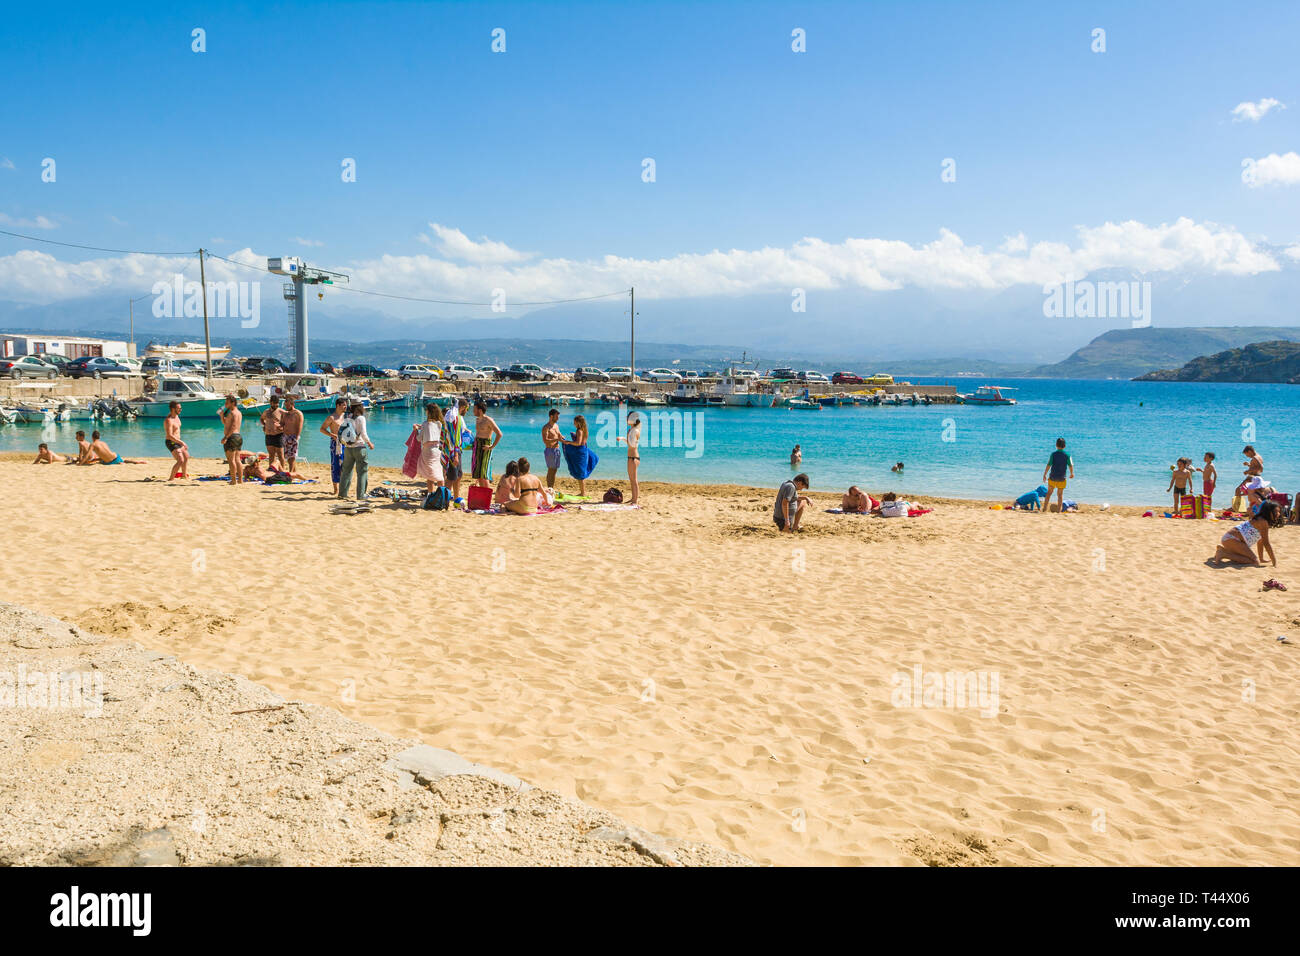 CRETE, GREECE - May 1,2015: Marathi beach with fine sand and shallow calm water. West Crete, Greece - Stock Image